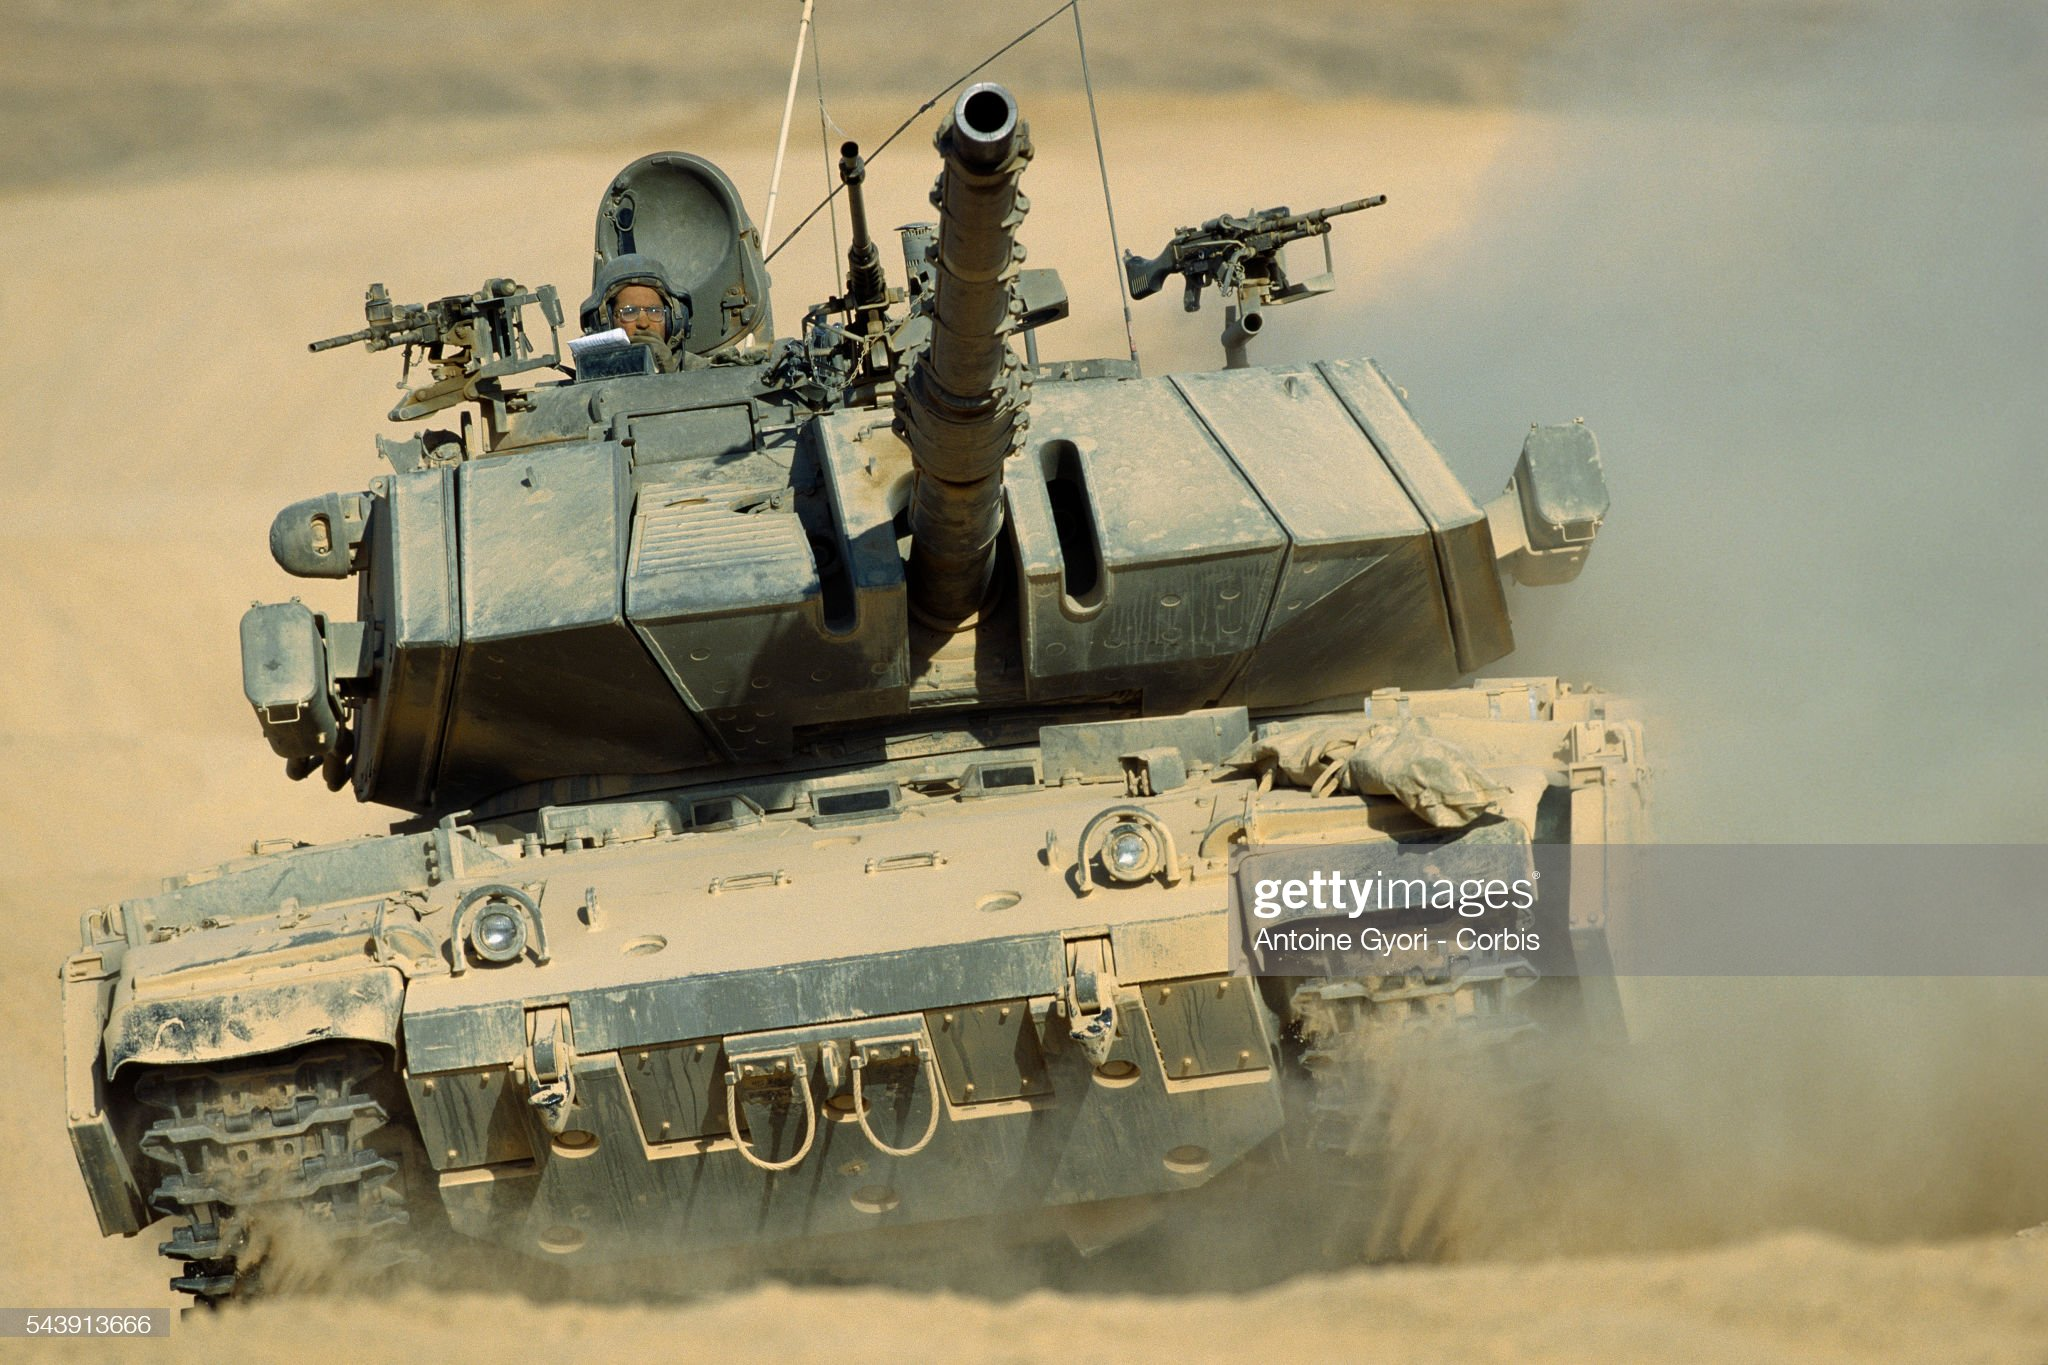 https://media.gettyimages.com/photos/merkava-tank-maneuves-in-the-sands-of-the-neguev-desert-picture-id543913666?s=2048x2048